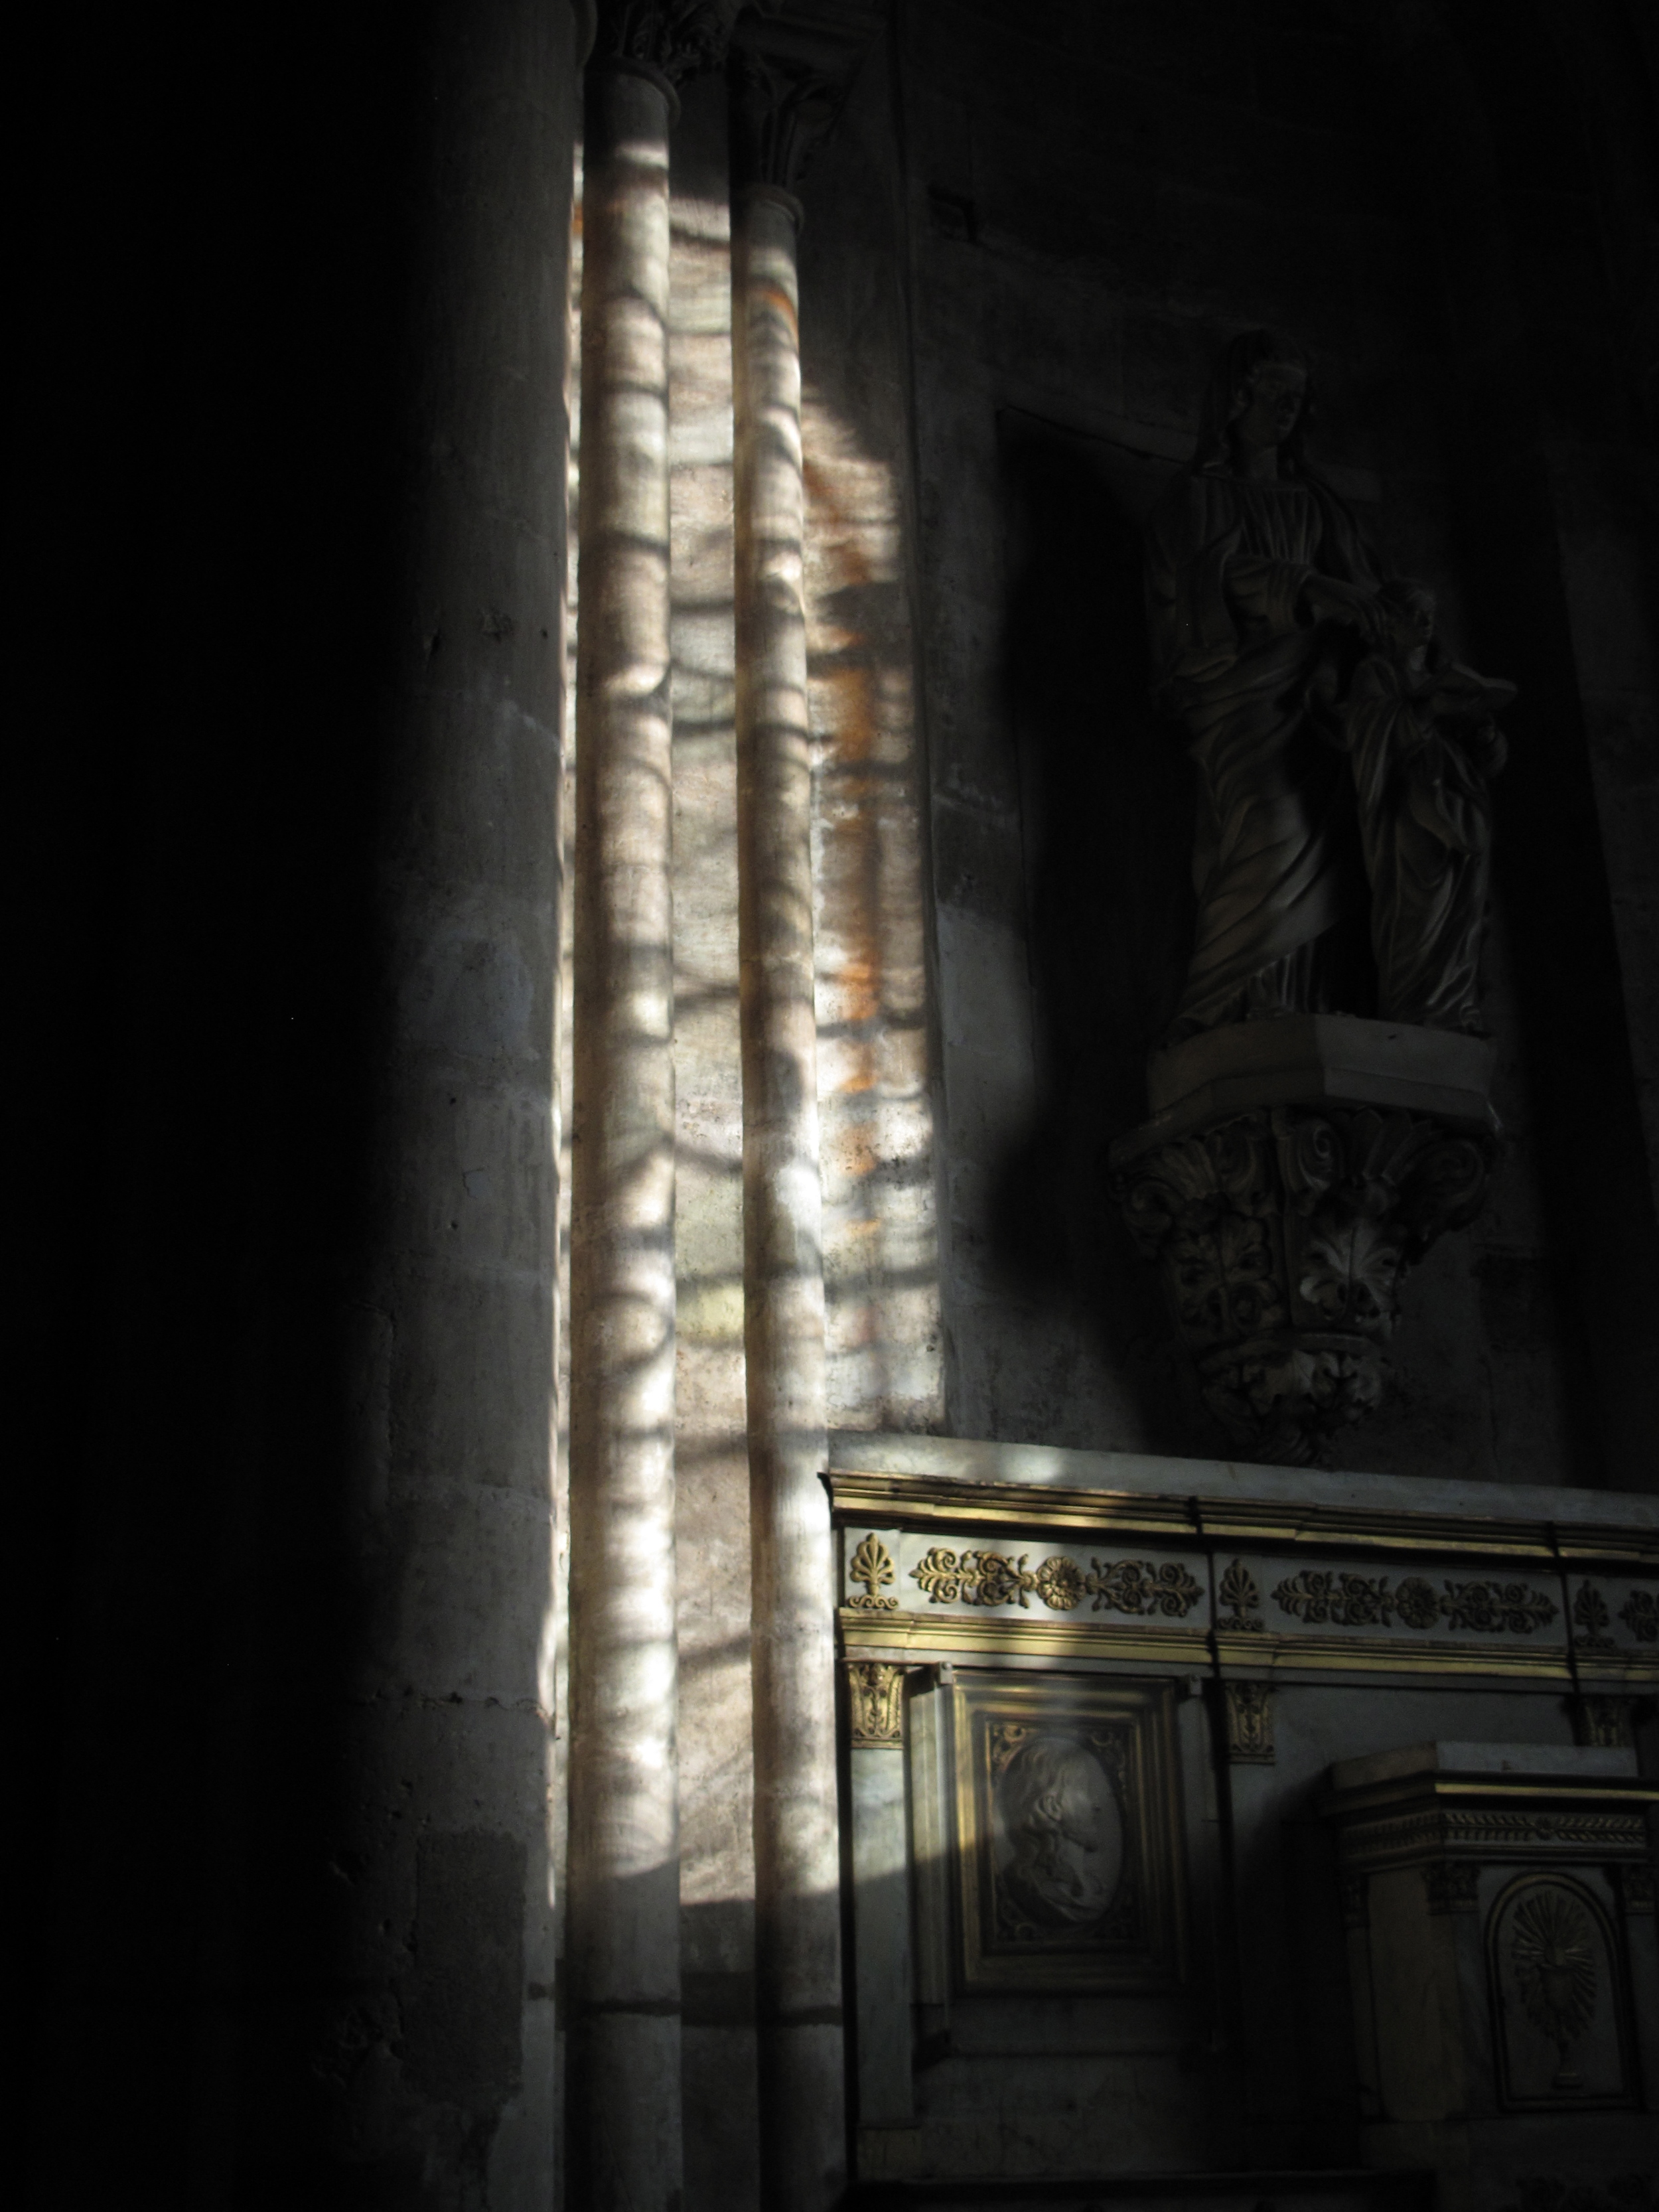 Shadows and stained glass reflections in Saint-Sulpice